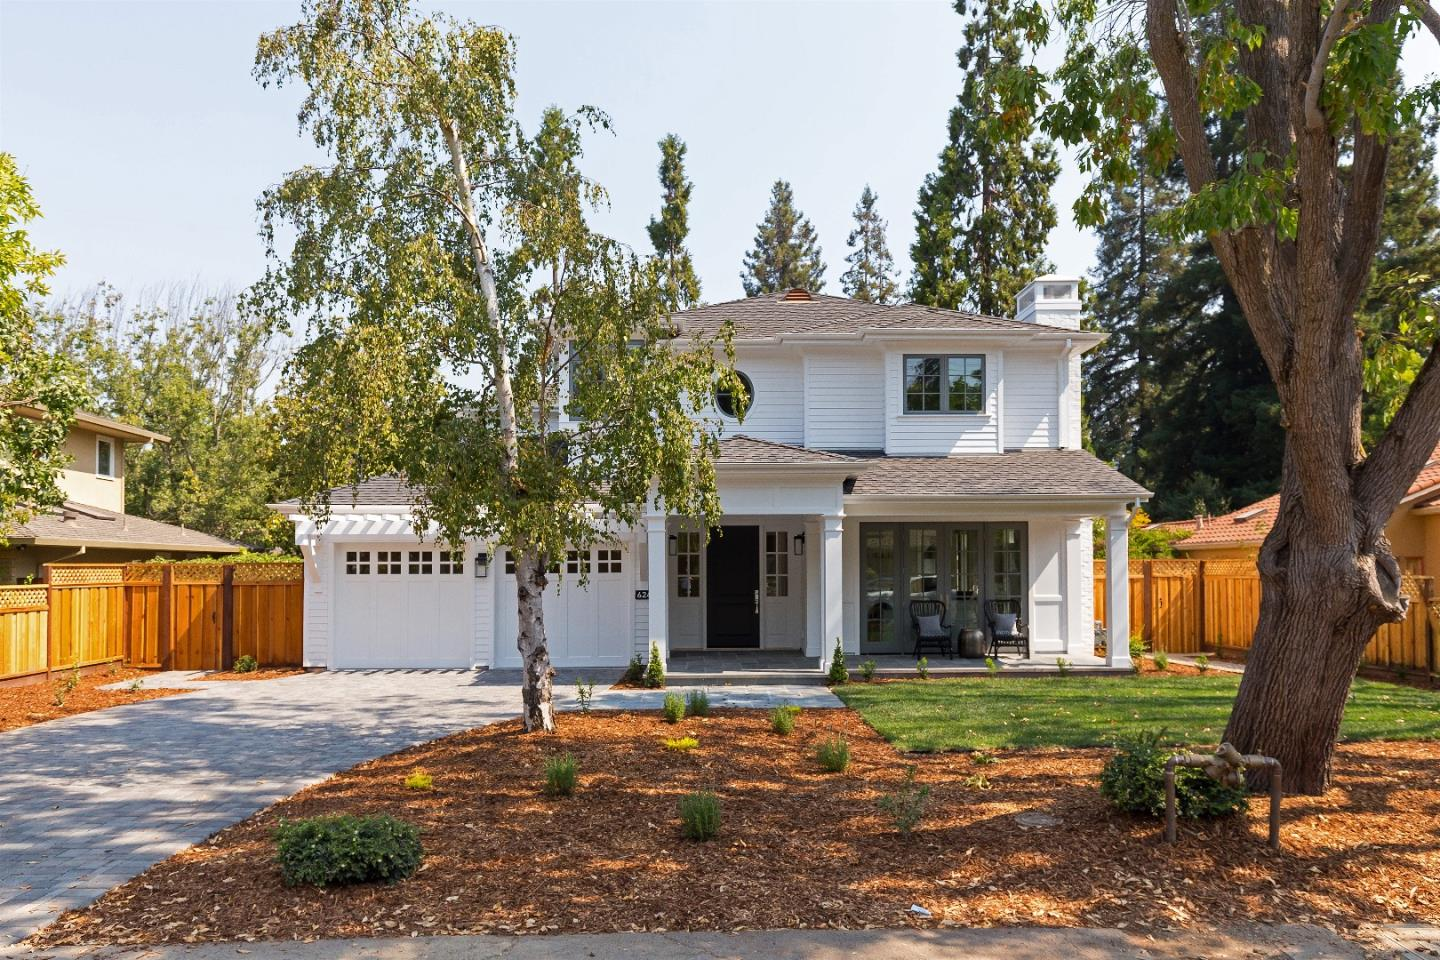 Single Family Home for Sale at 624 Olive Street Menlo Park, California 94025 United States